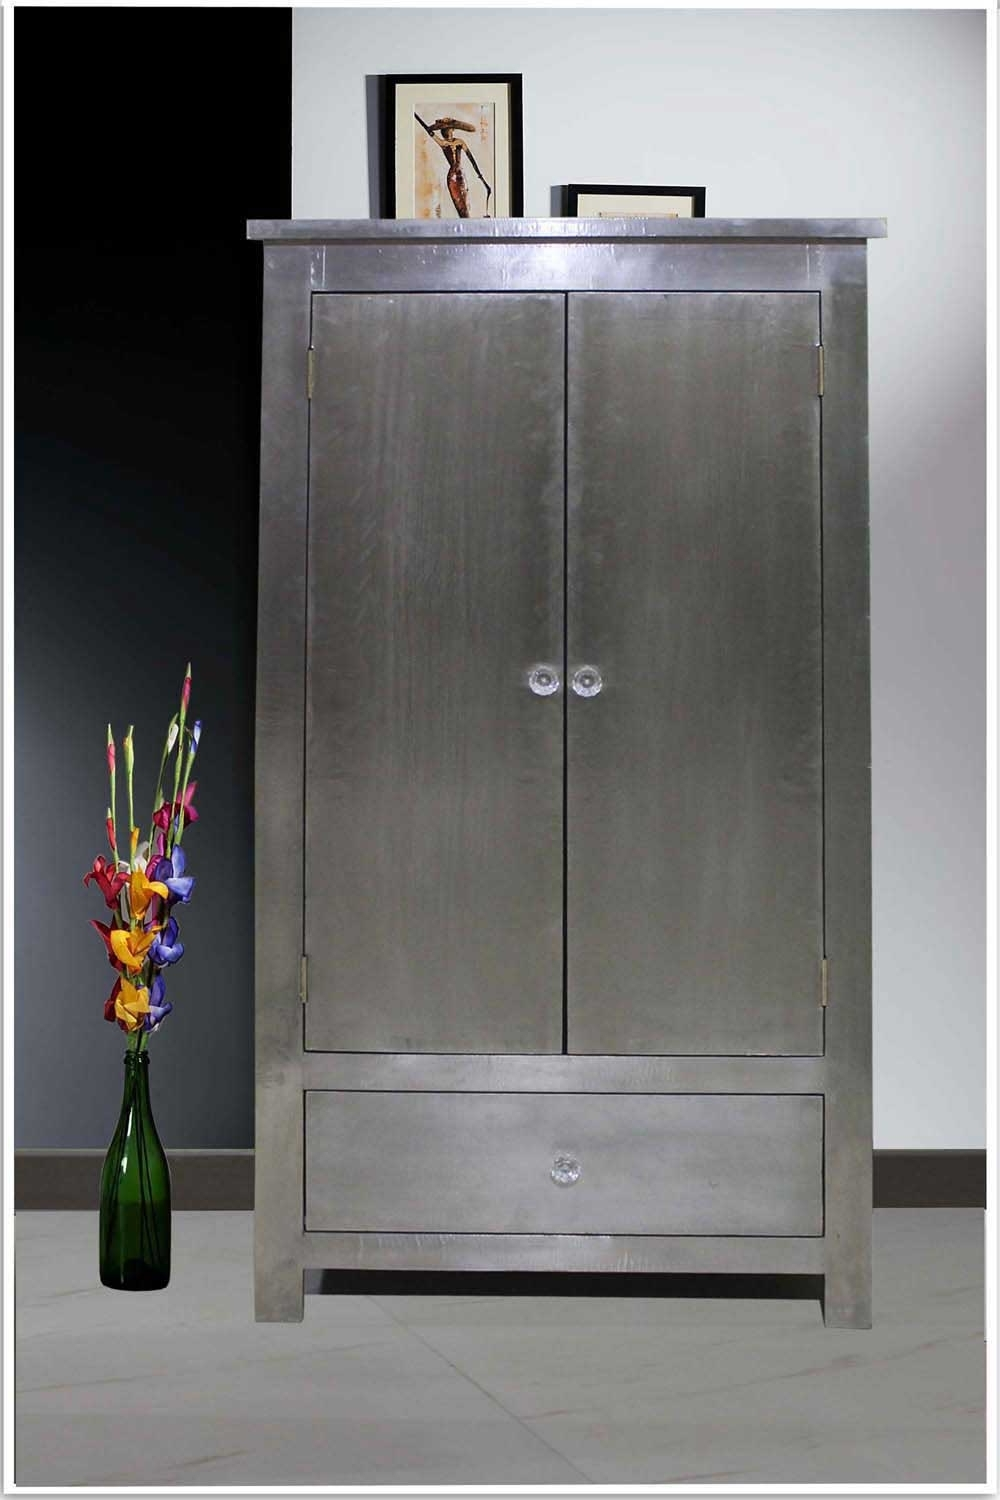 Silver Wardrobes Throughout Most Popular White Metal Wardrobe – White Metal Furniture Store (View 9 of 15)